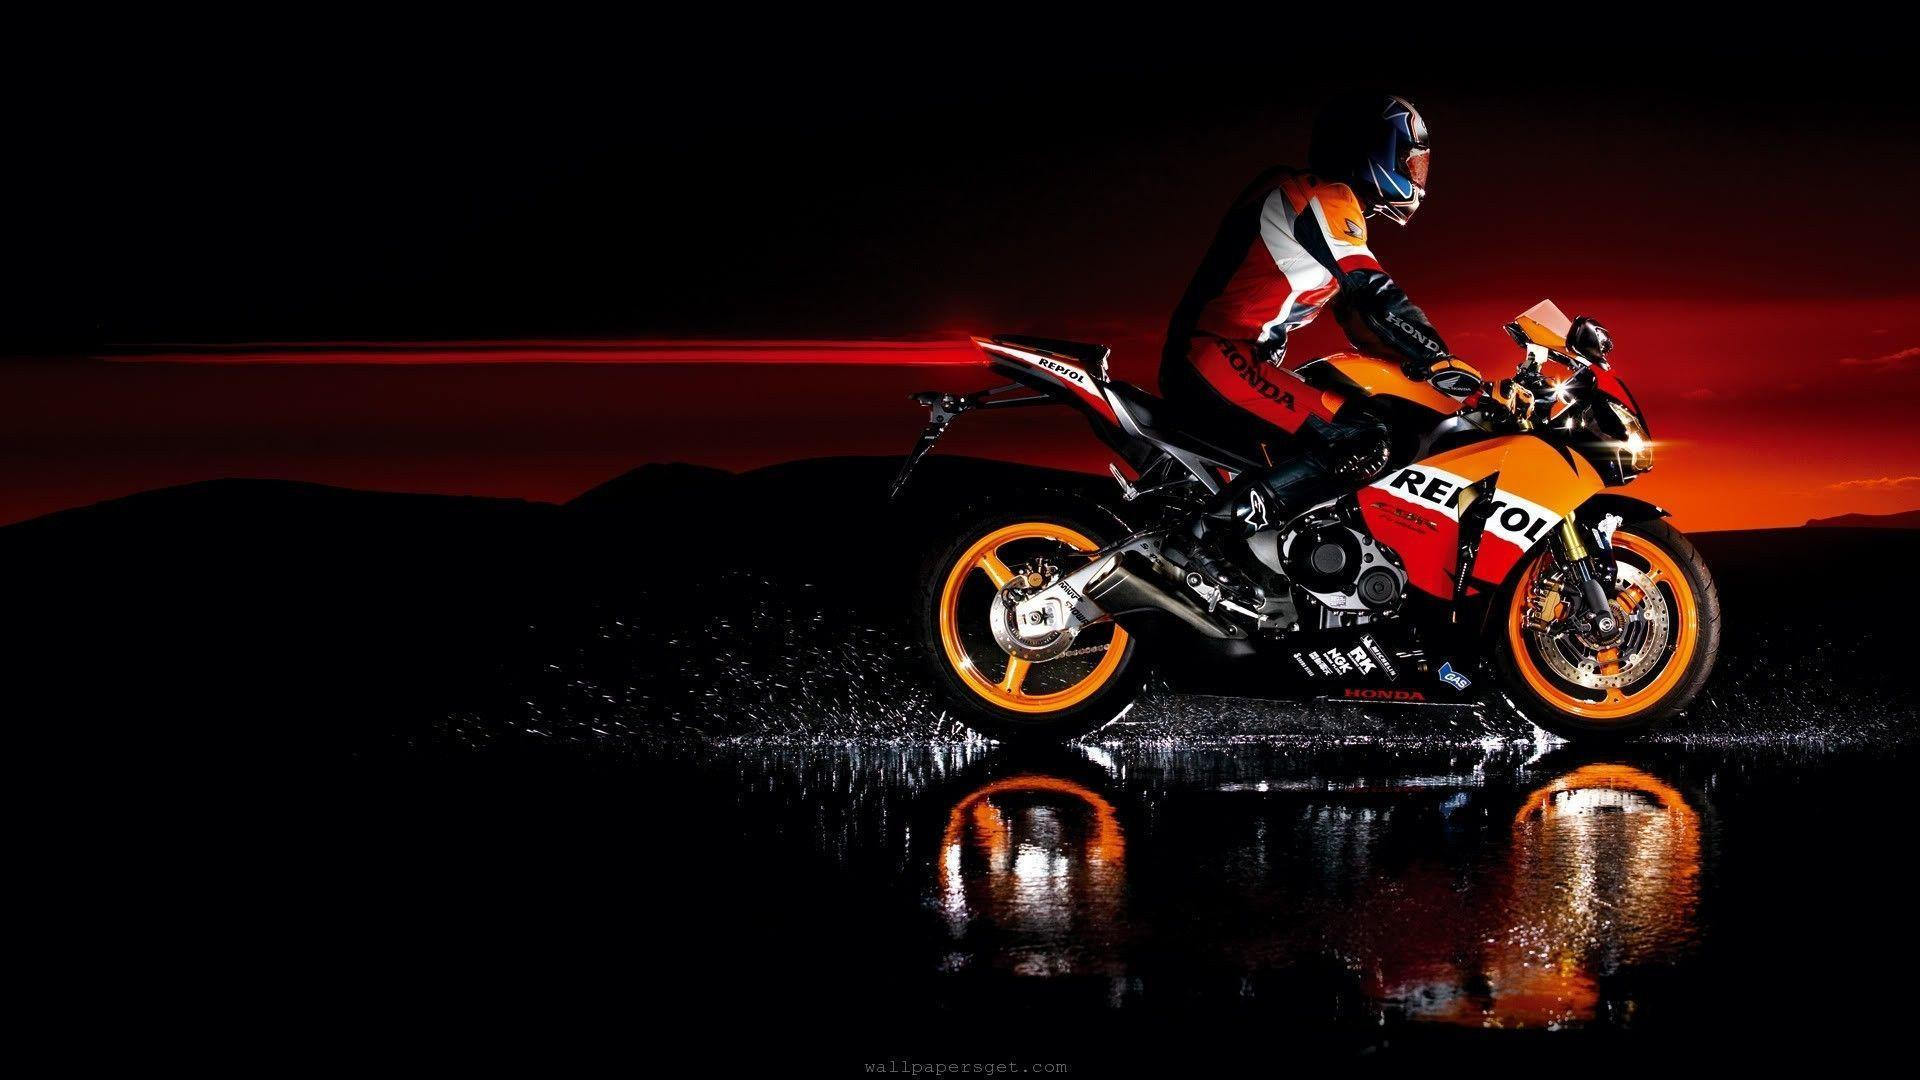 Motorcycle HD Wallpapers 1920x1080